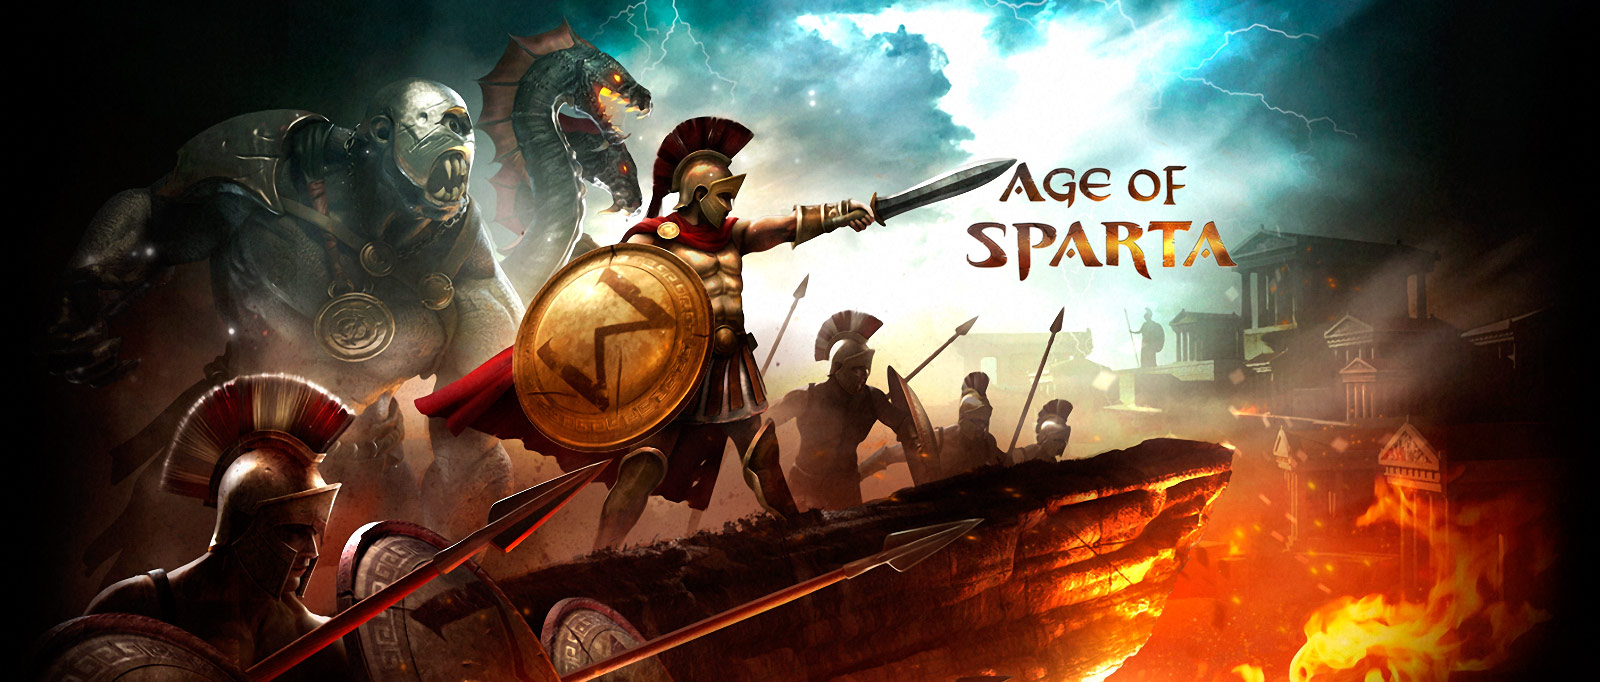 Age Of Empires Wallpaper Hd Gameloft Age Of Sparta